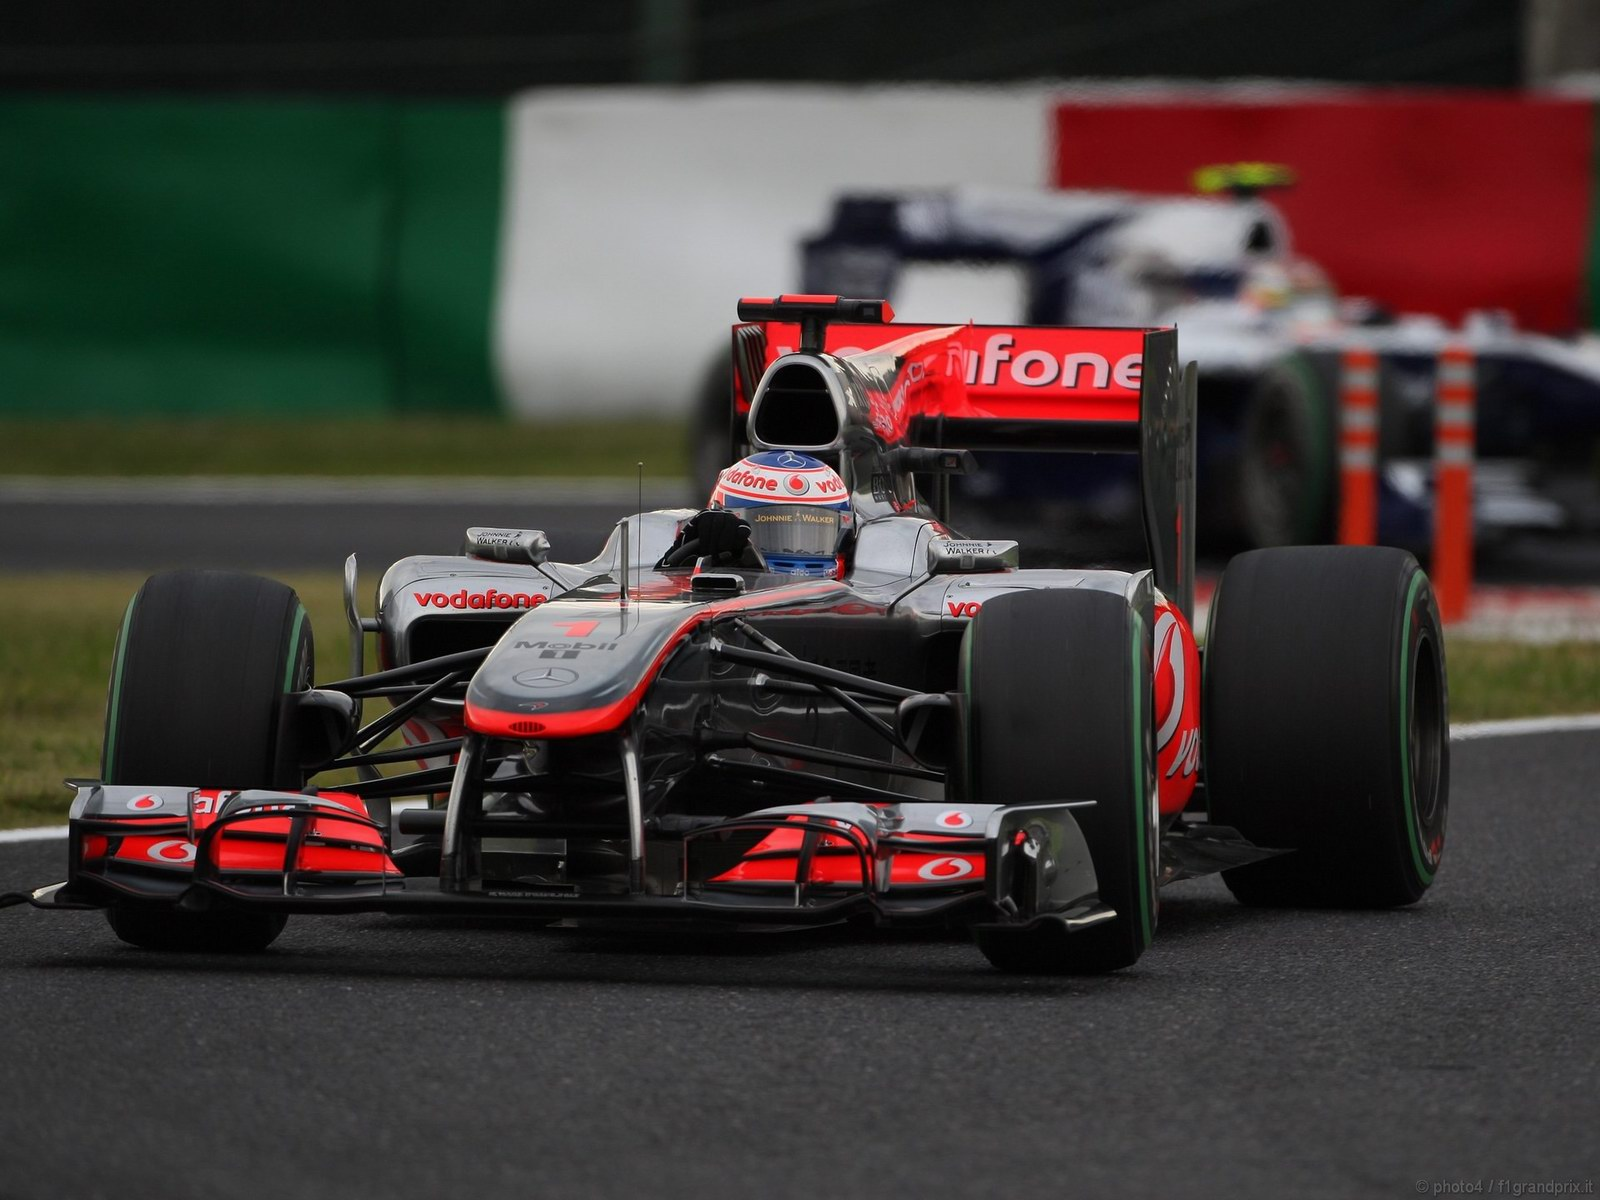 pojazdy - formula1 - gp_giappone_wallpapers_000072